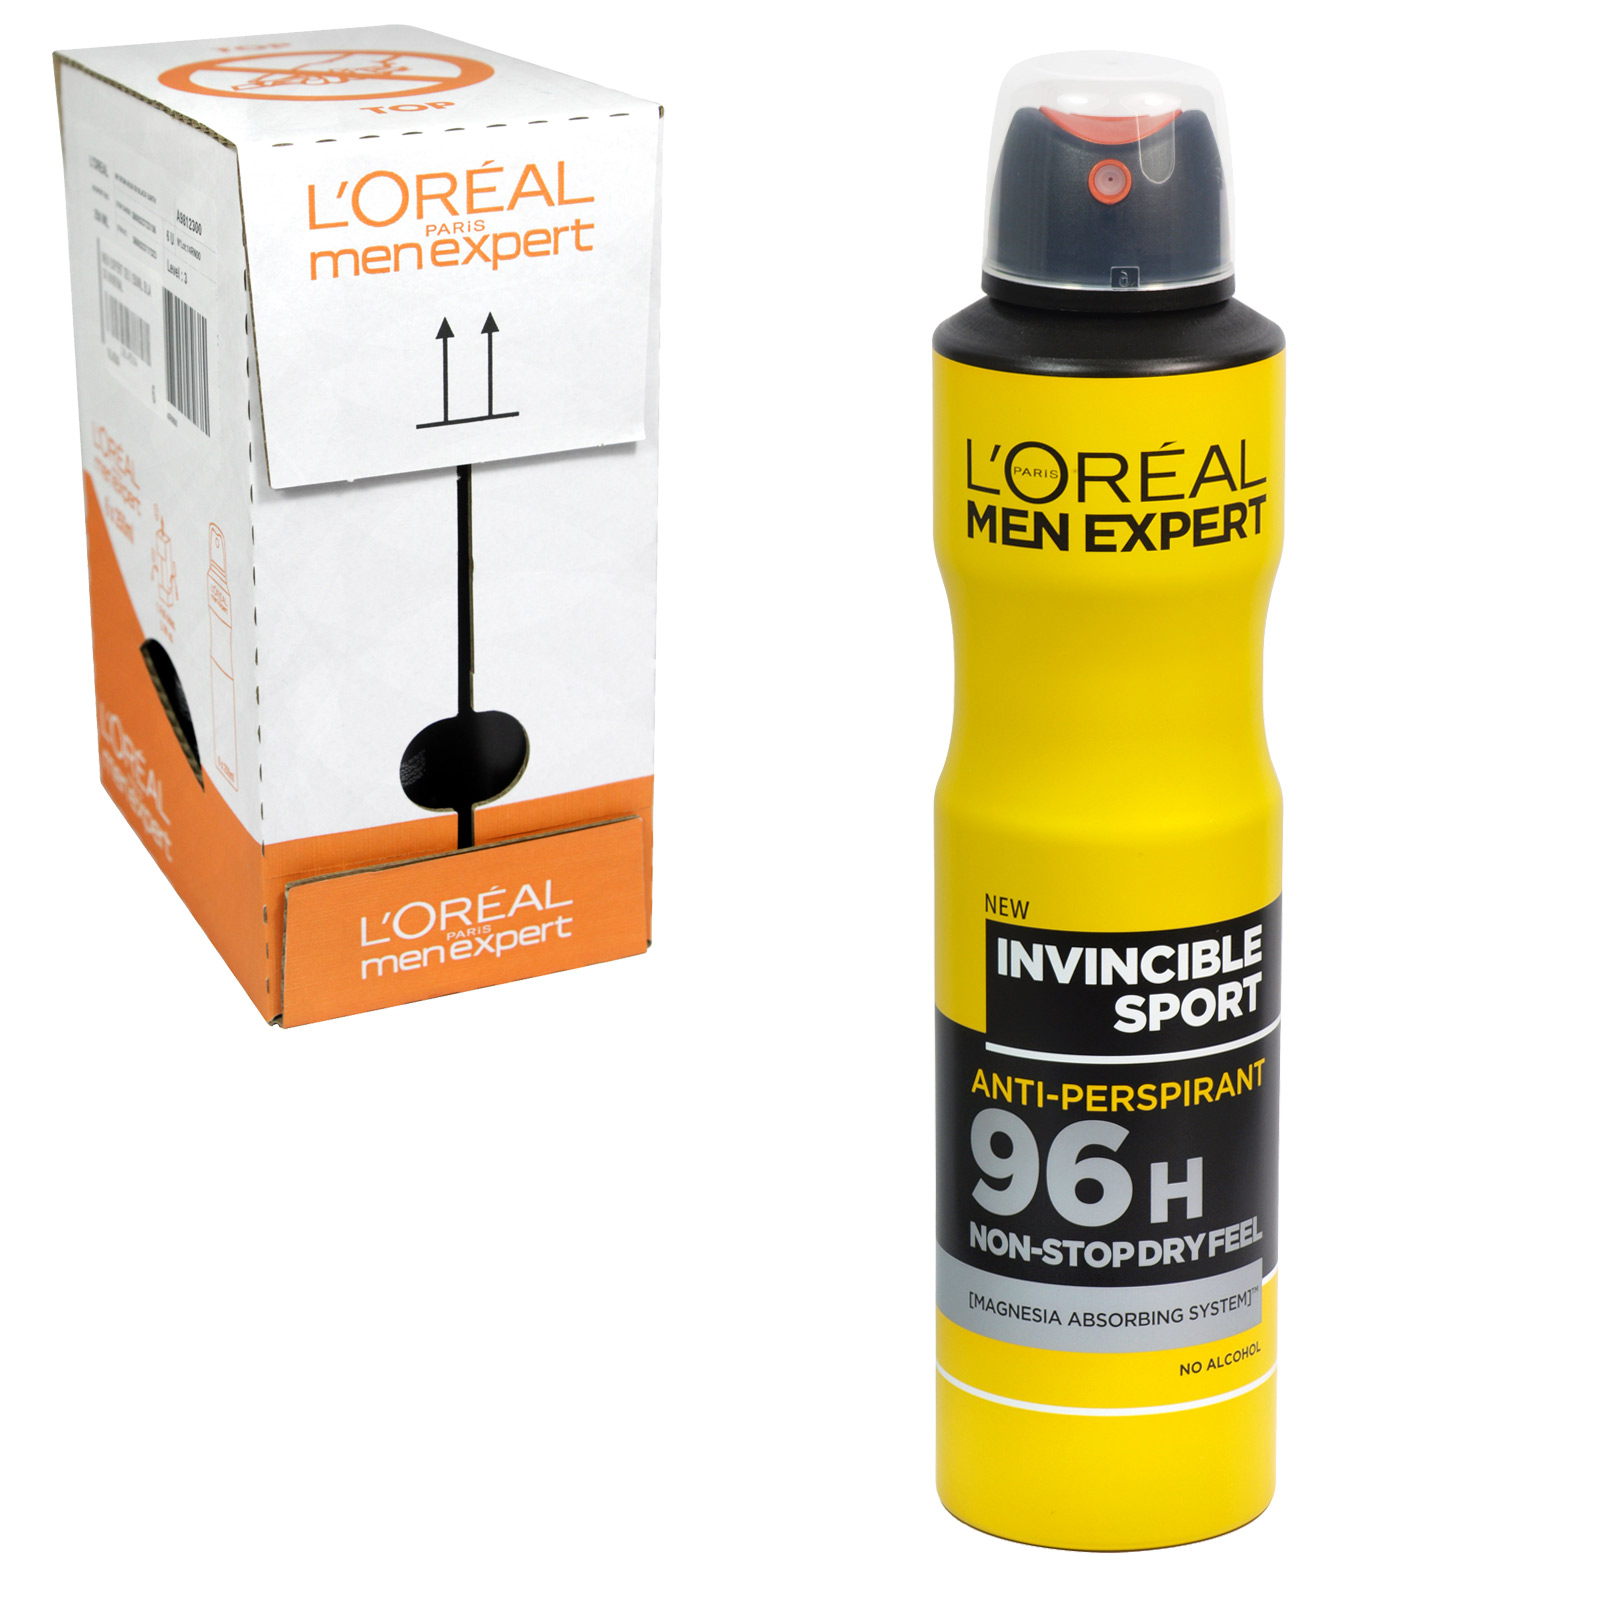 LOREAL MEN EXPERT DEO 250ML INVINCIBLE SPORT ANTI PERS 96HR NON STOP DRY FEEL X6